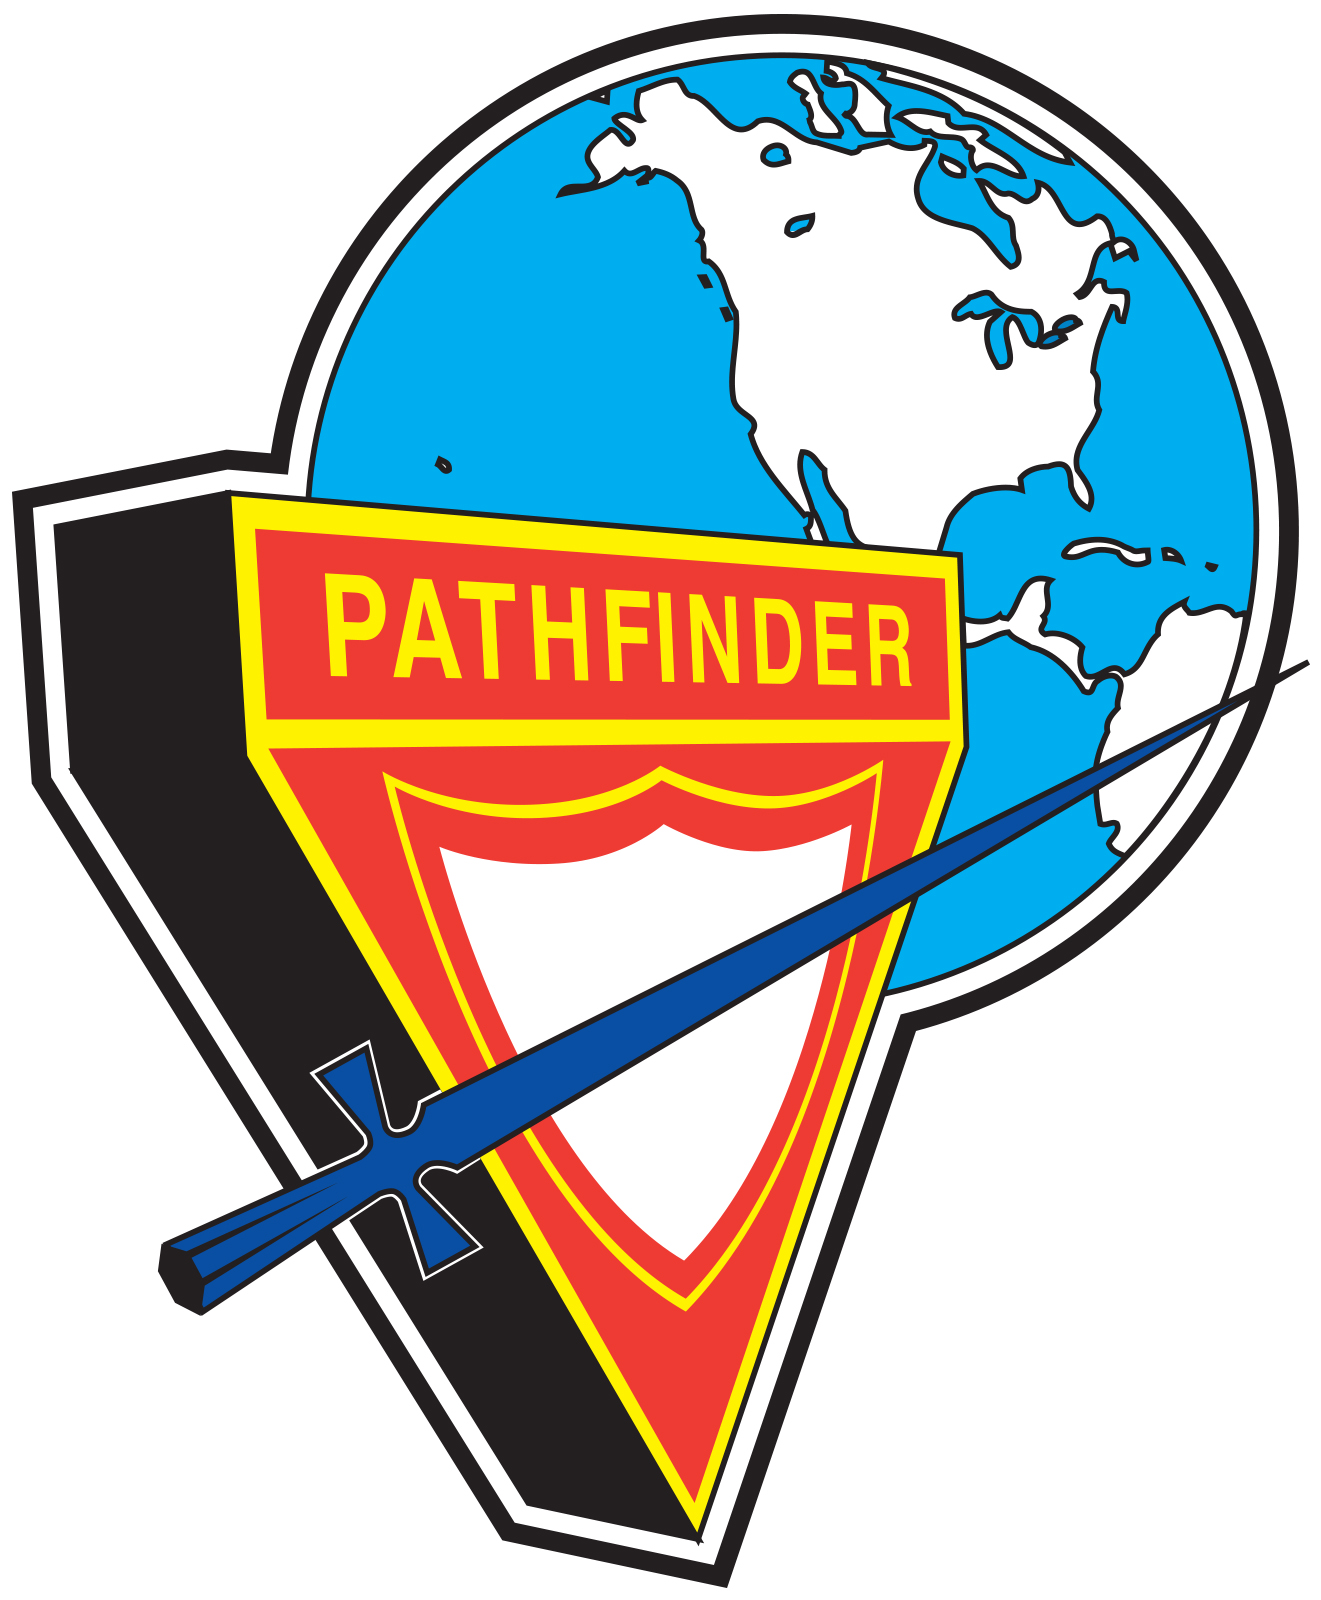 Pathfinder Logos | Club Ministries - North American Division